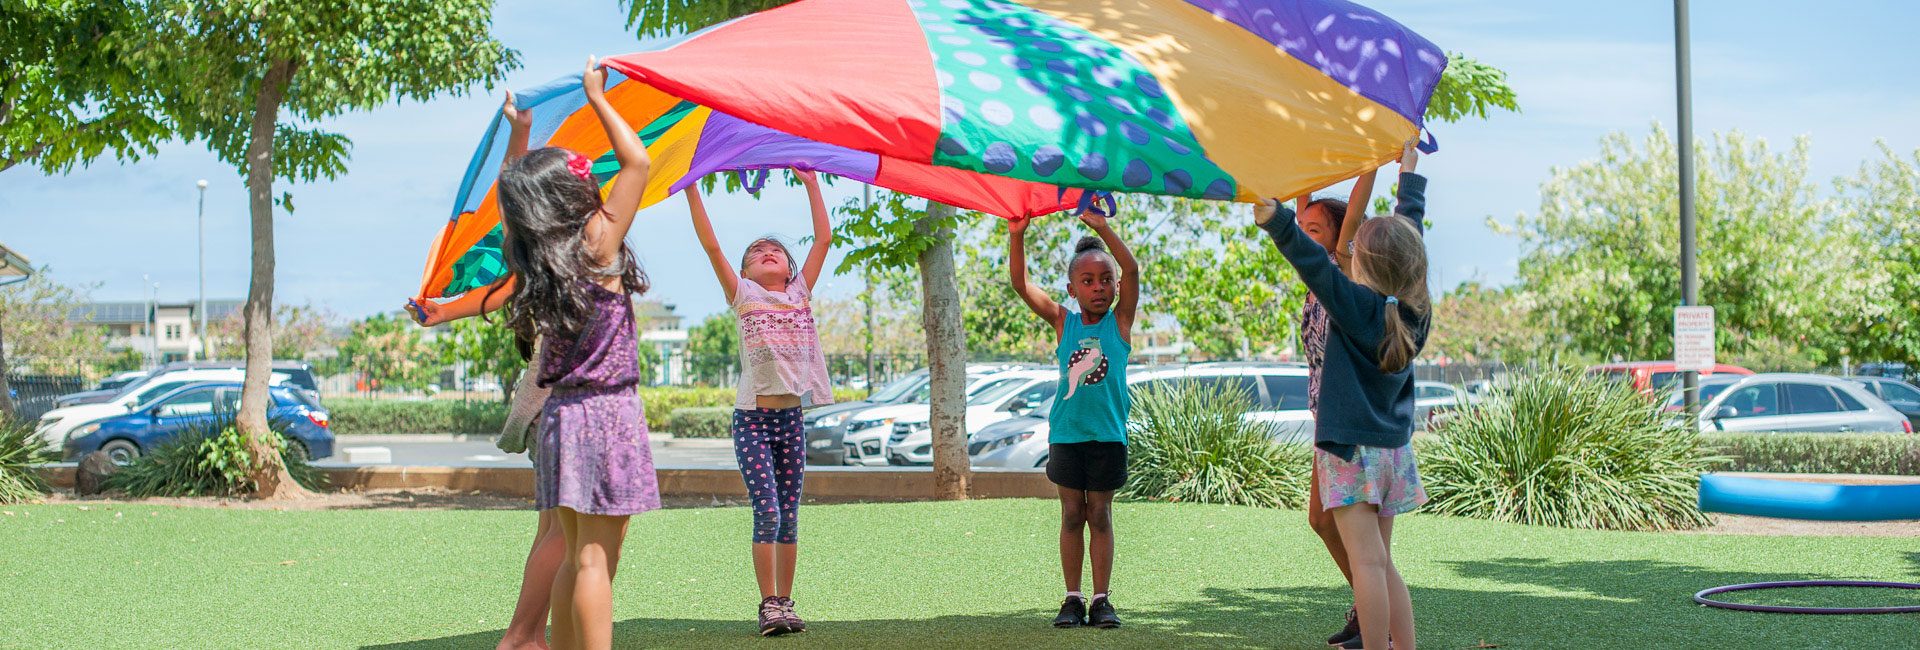 Elementary students playing with a colorful parachute on the grass